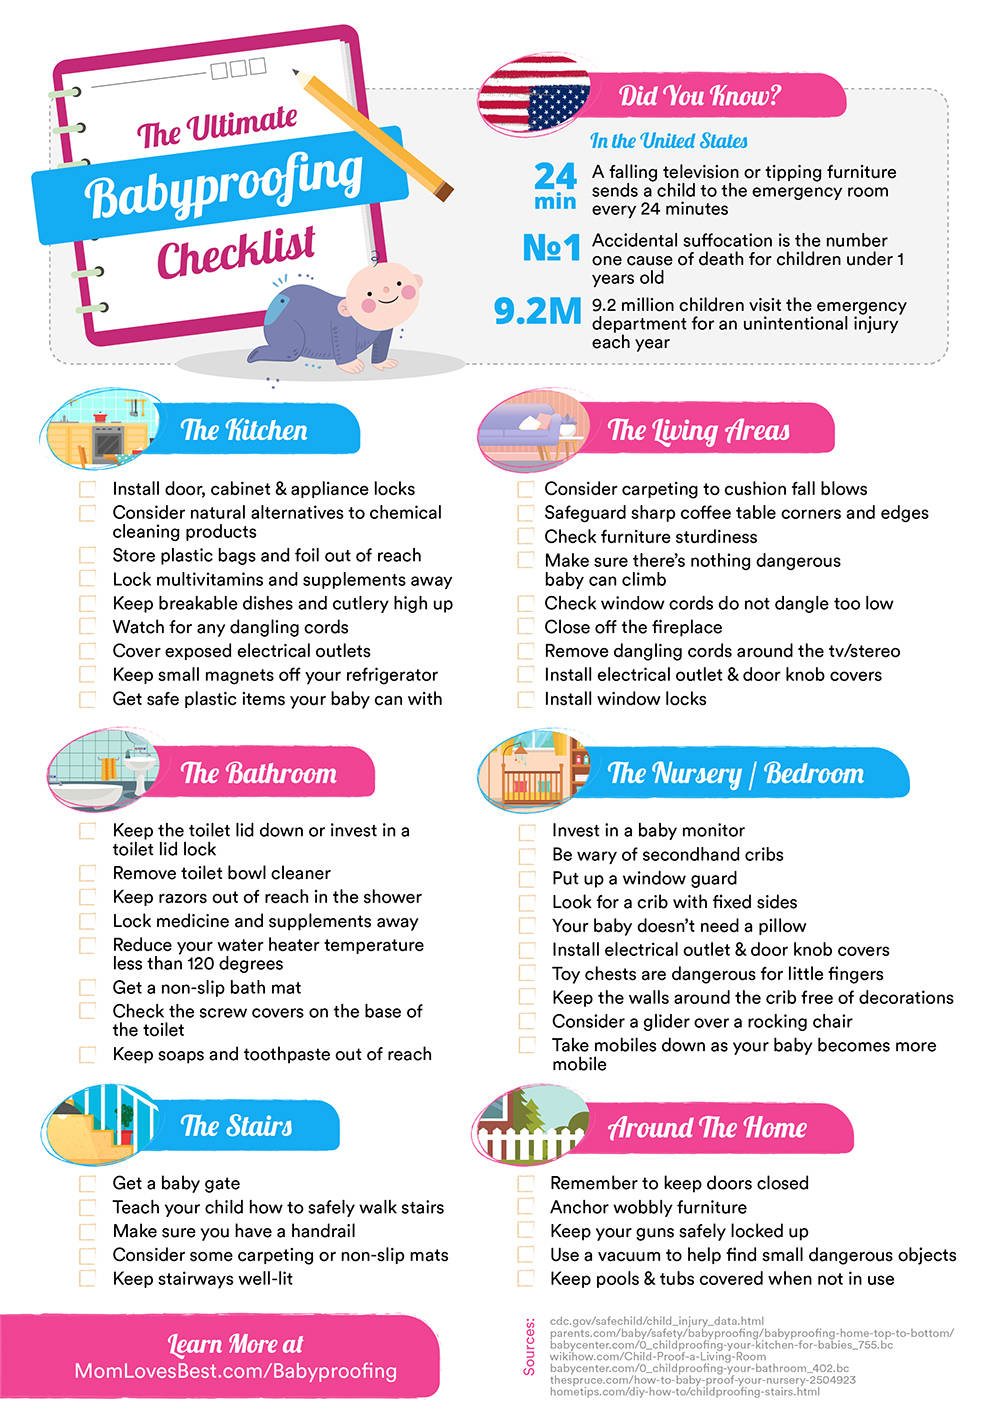 Are you worried about if your new baby will be safe in your home? Click here to get a free checklist to help you babyproof every room in your house. #baby #newborn #babyproofing #childproofing #kids #momlife